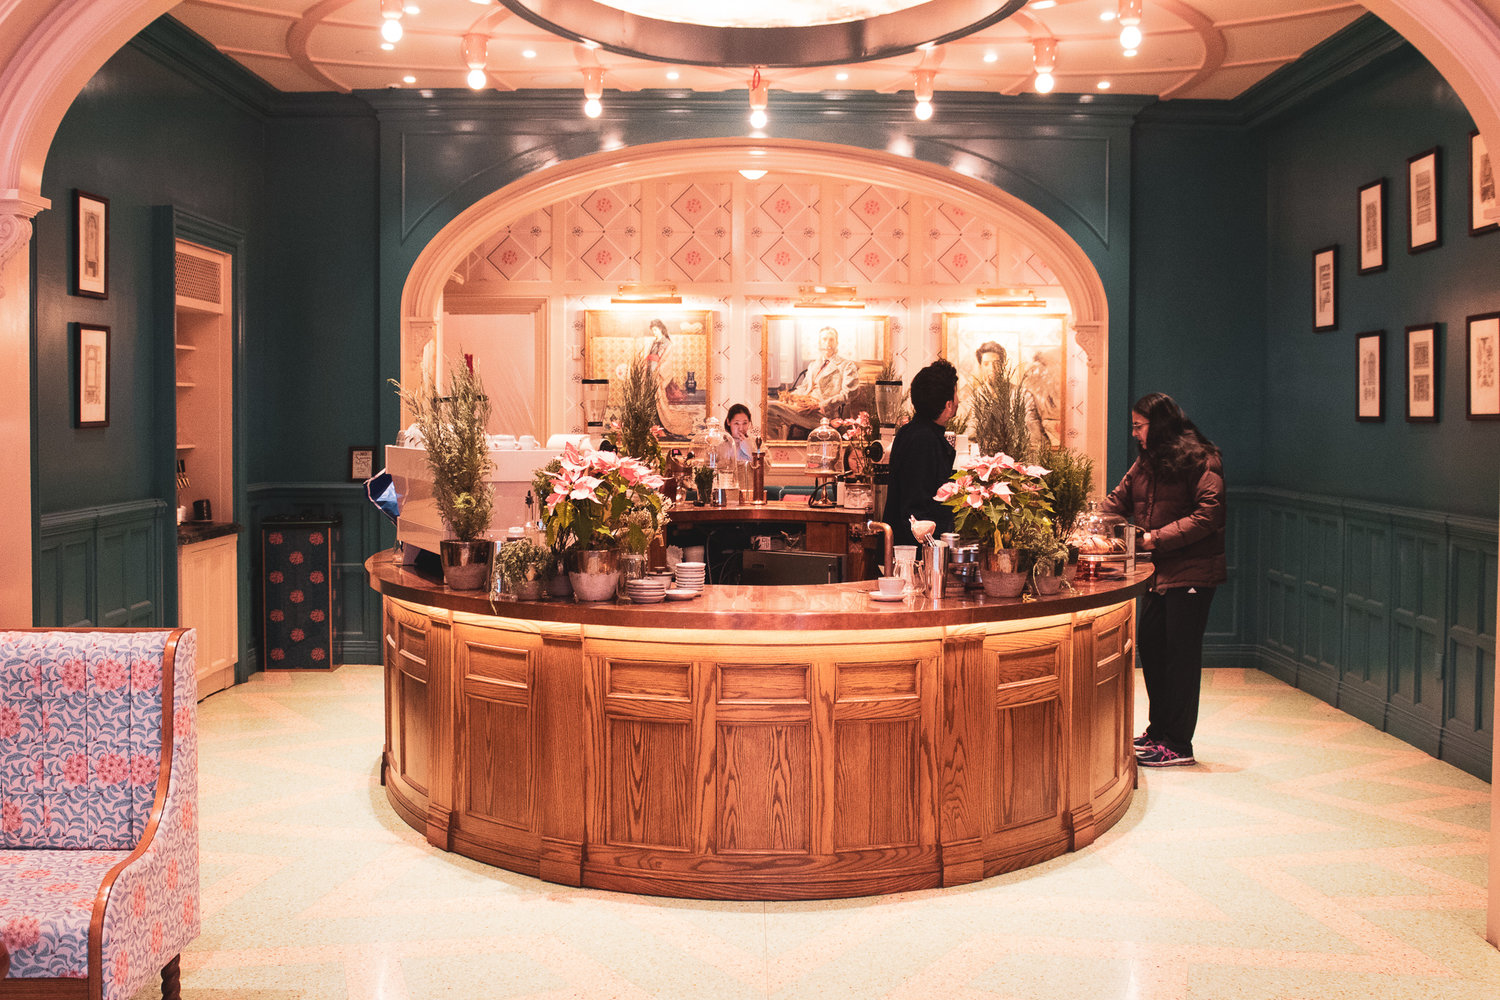 Felix Roasting Co: The Most Instagrammable Coffeeshop in NYC